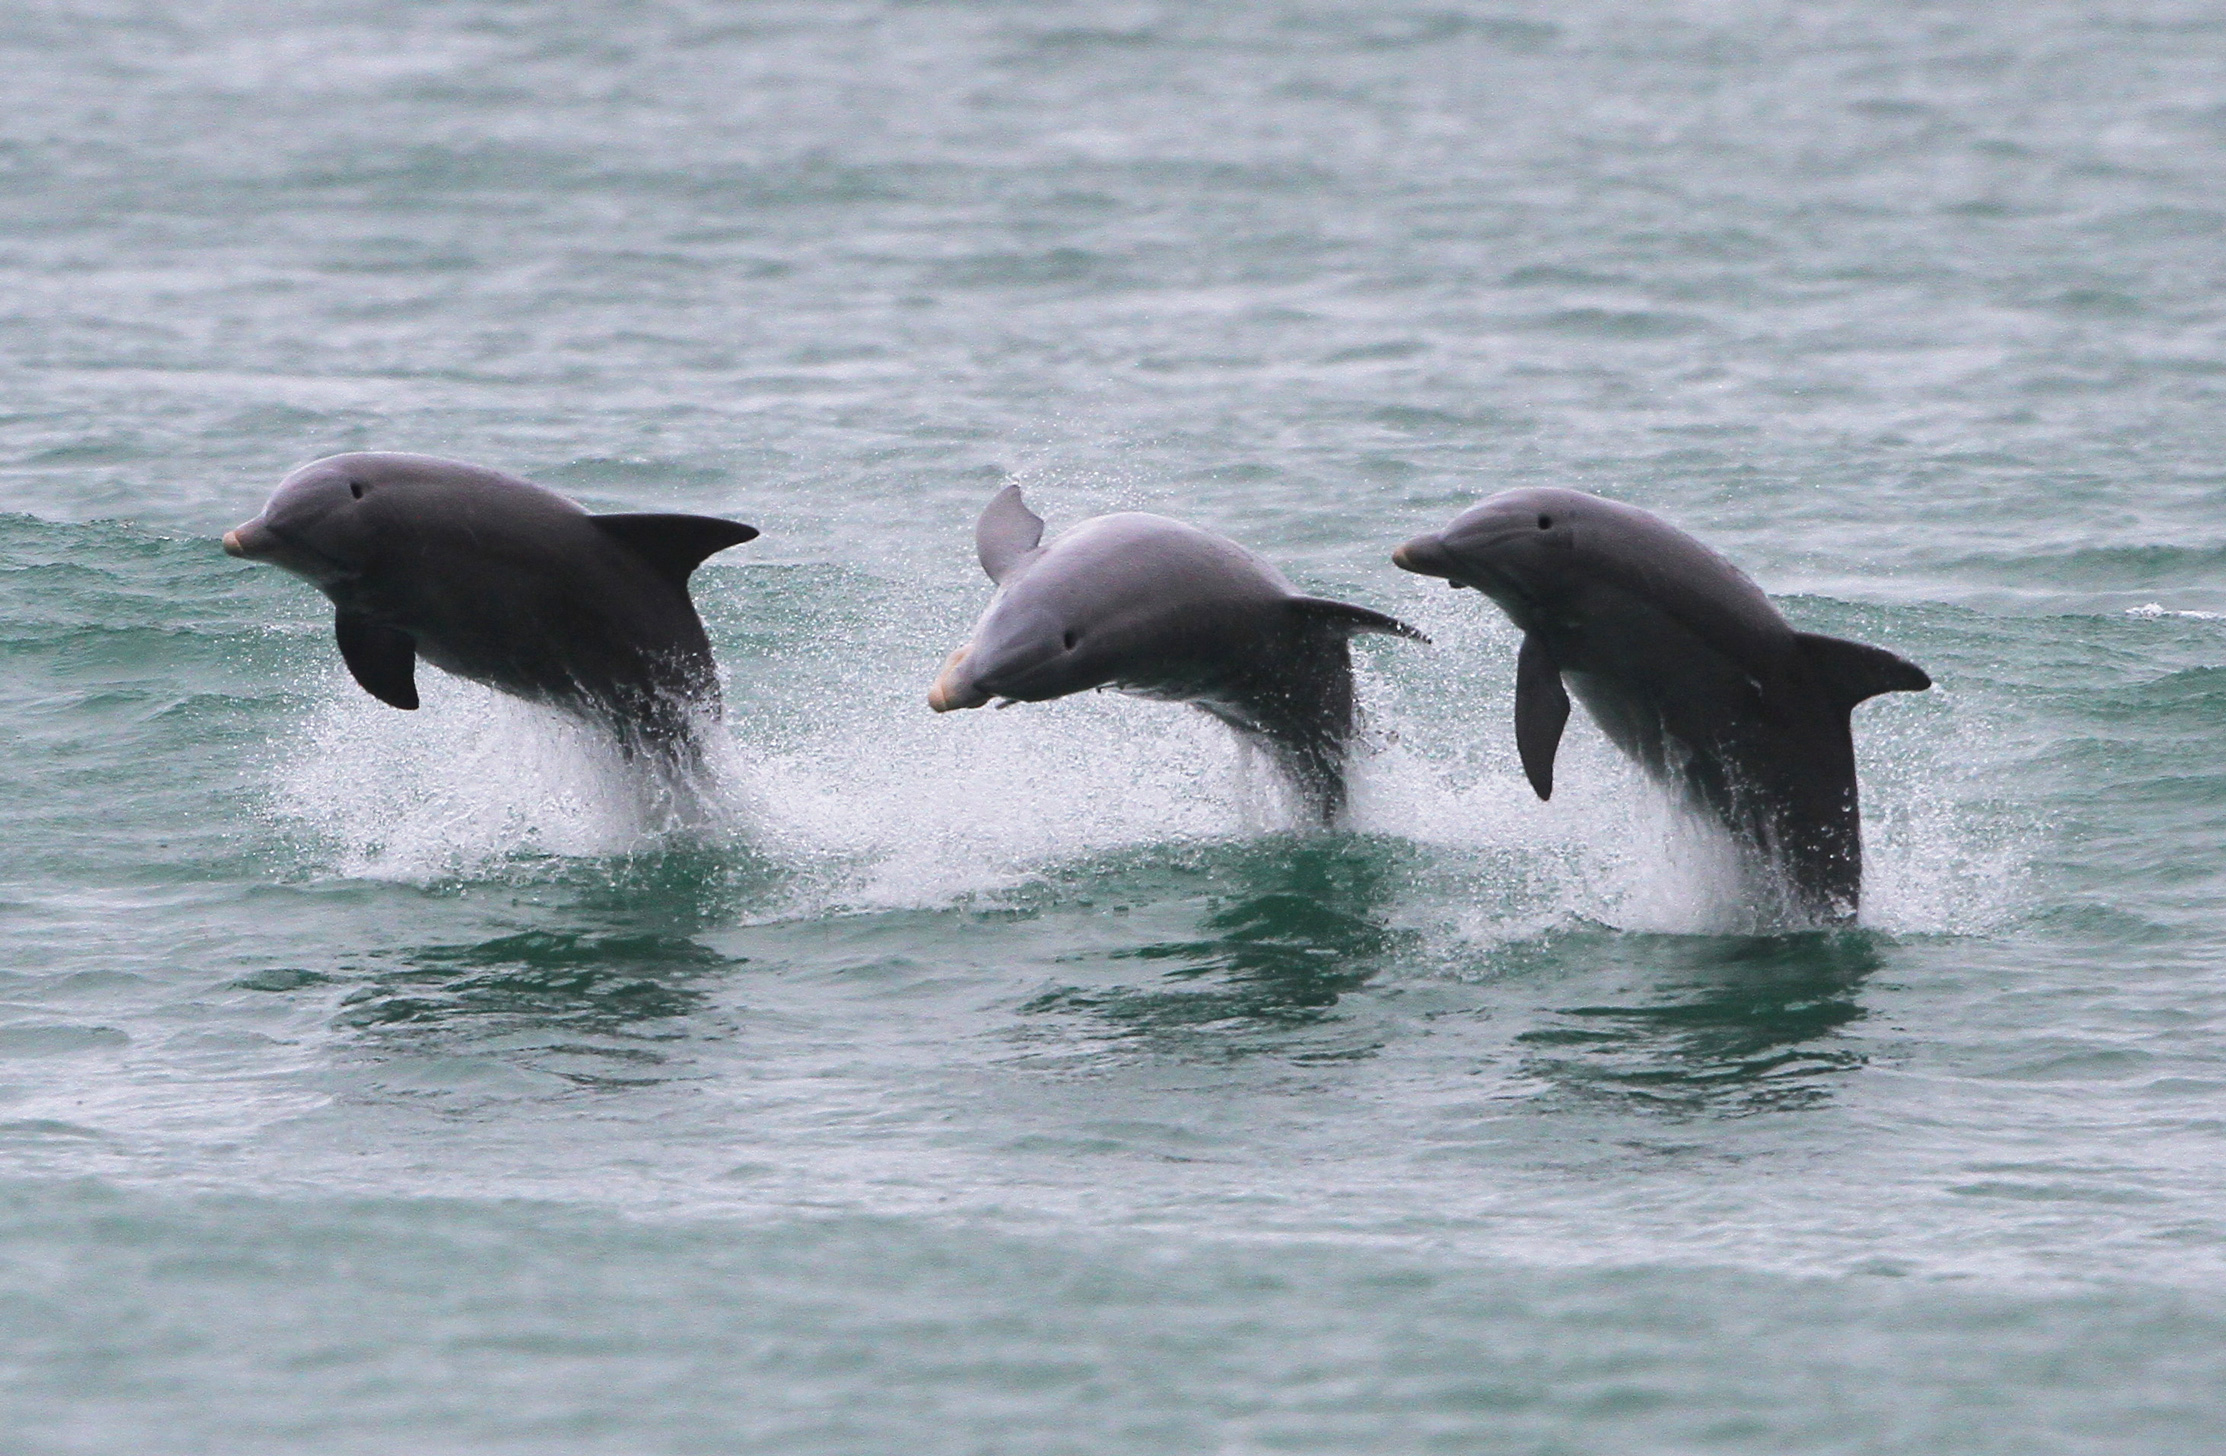 Dolphins; photo by Sam Bland